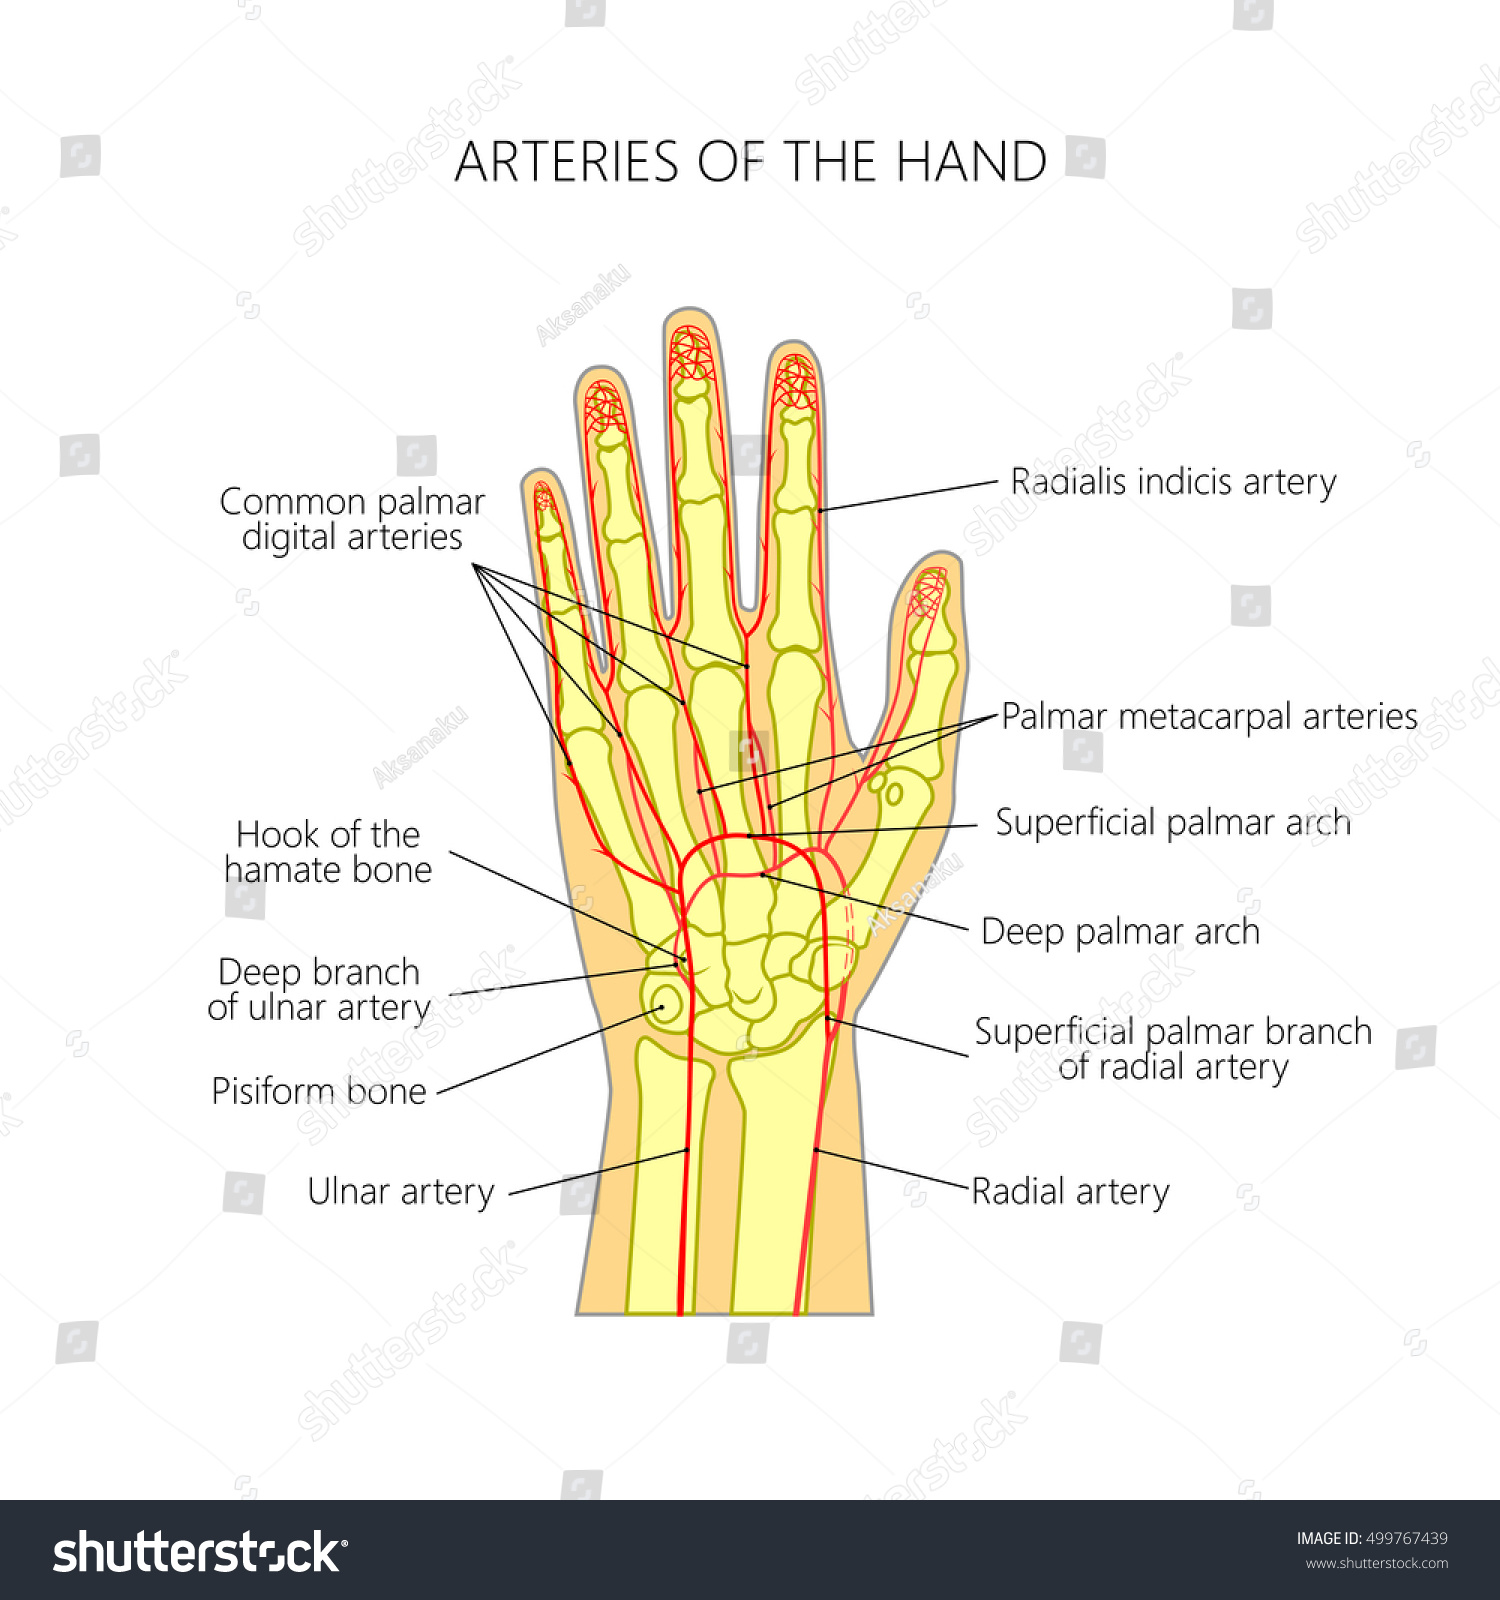 Vascular anatomy of the hand